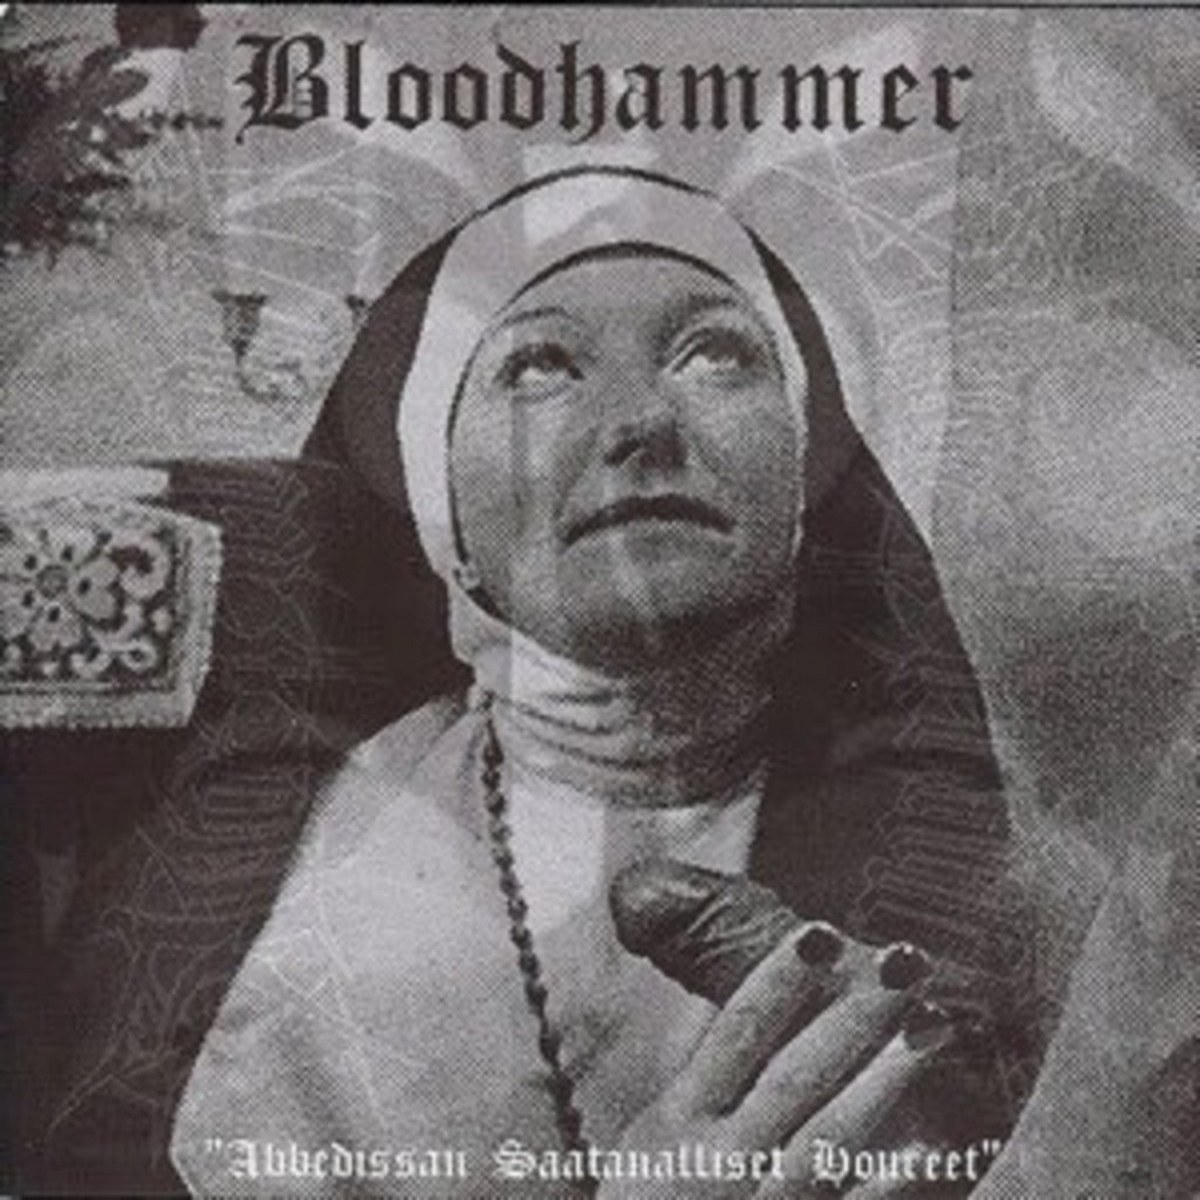 Review for Bloodhammer - Abbedissan Saatanalliset Houreet